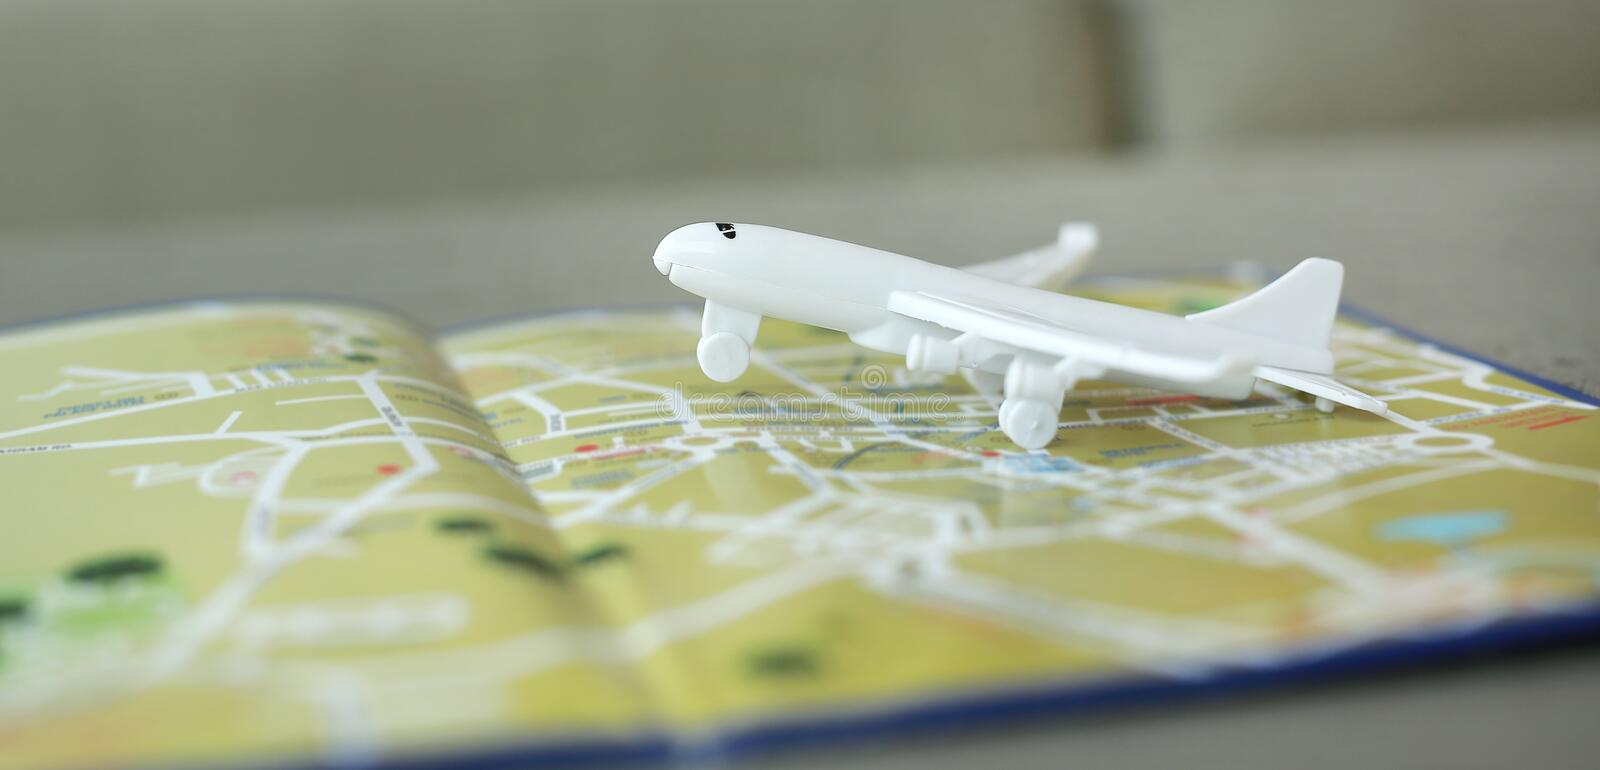 Miniature of a passenger plane flying on the map. Conceptual image for tourism and travel royalty free stock photos